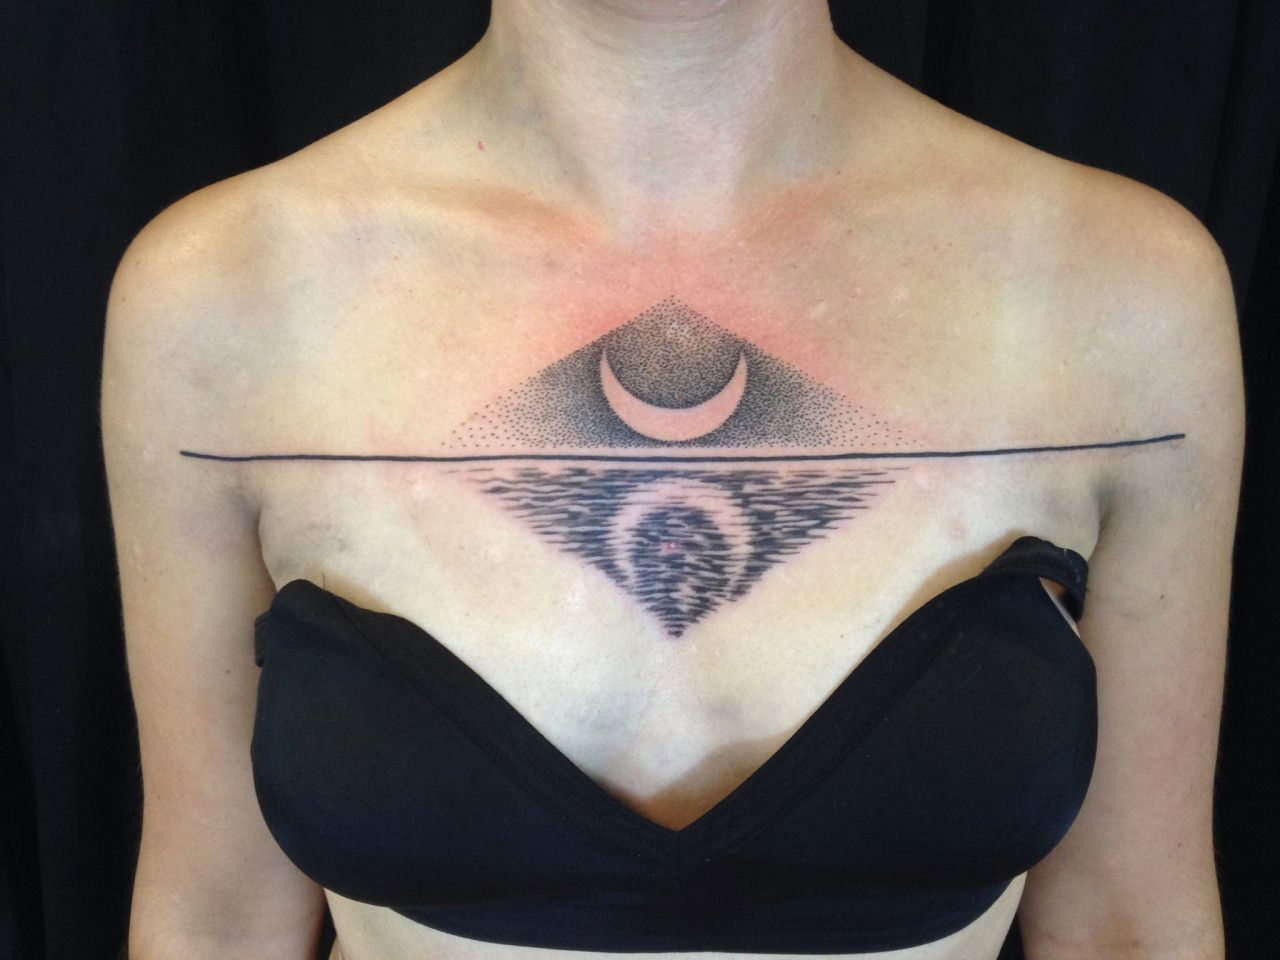 By Jessica Guillory @ Sacred Lotus, Asheville, NC